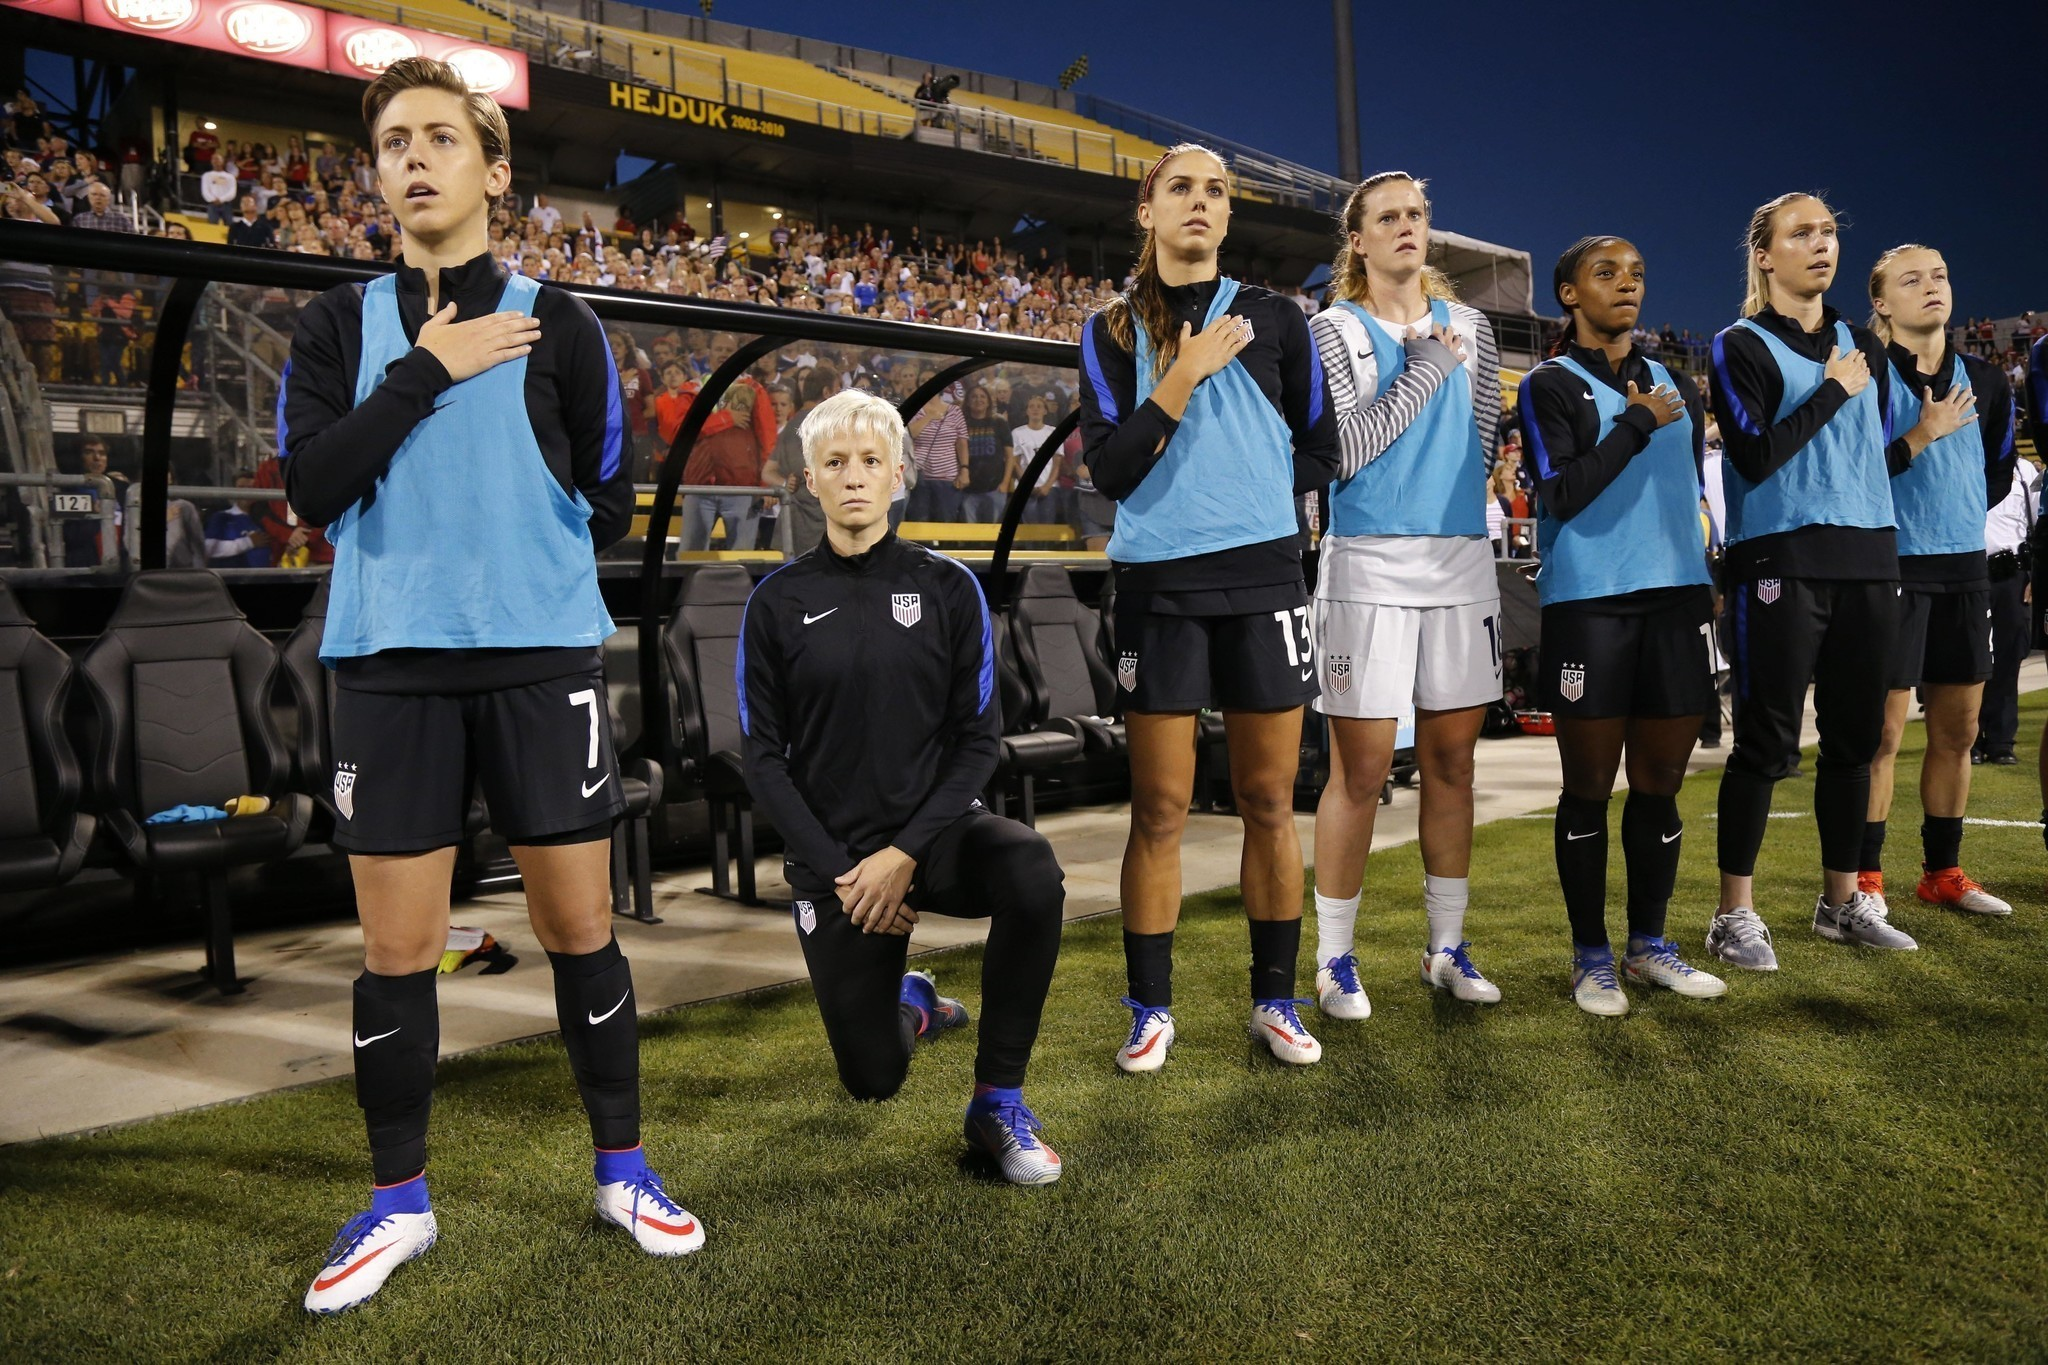 29ca33e3d ... Jerseys Unveiled - U.S. Soccer Megan Rapinoe draws the ire of U.S.  soccer by kneeling during the anthem before a national ...